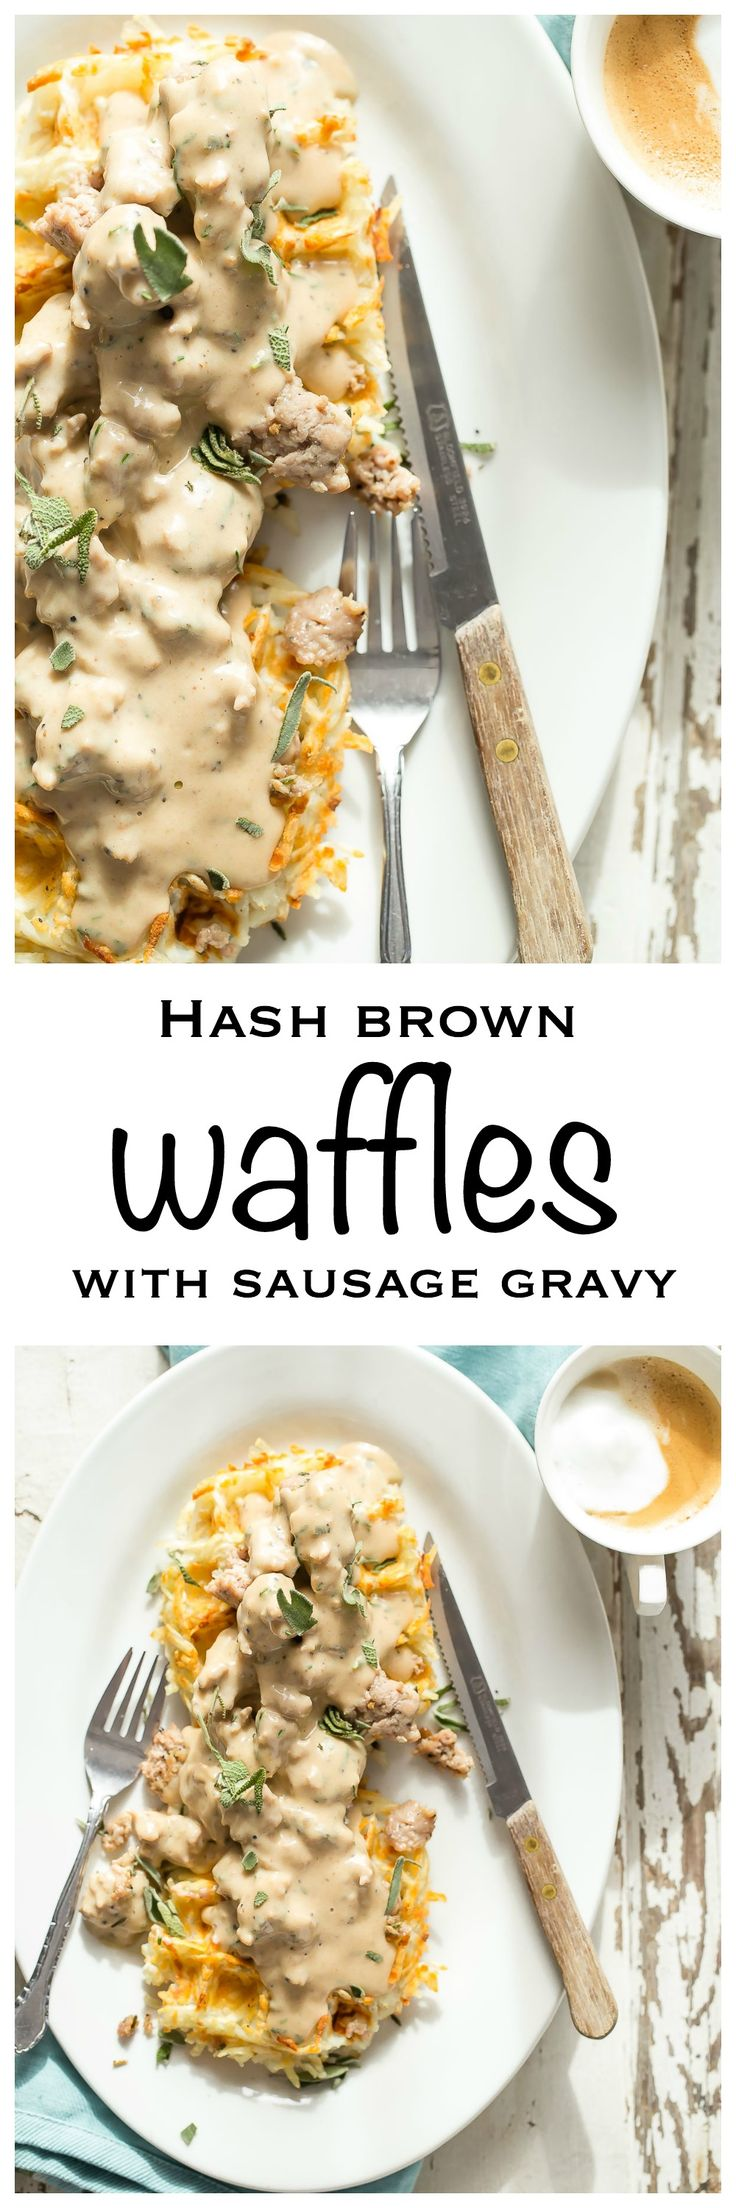 ideas about Sausage Gravy on Pinterest | Gravy, Sausages and Sausage ...